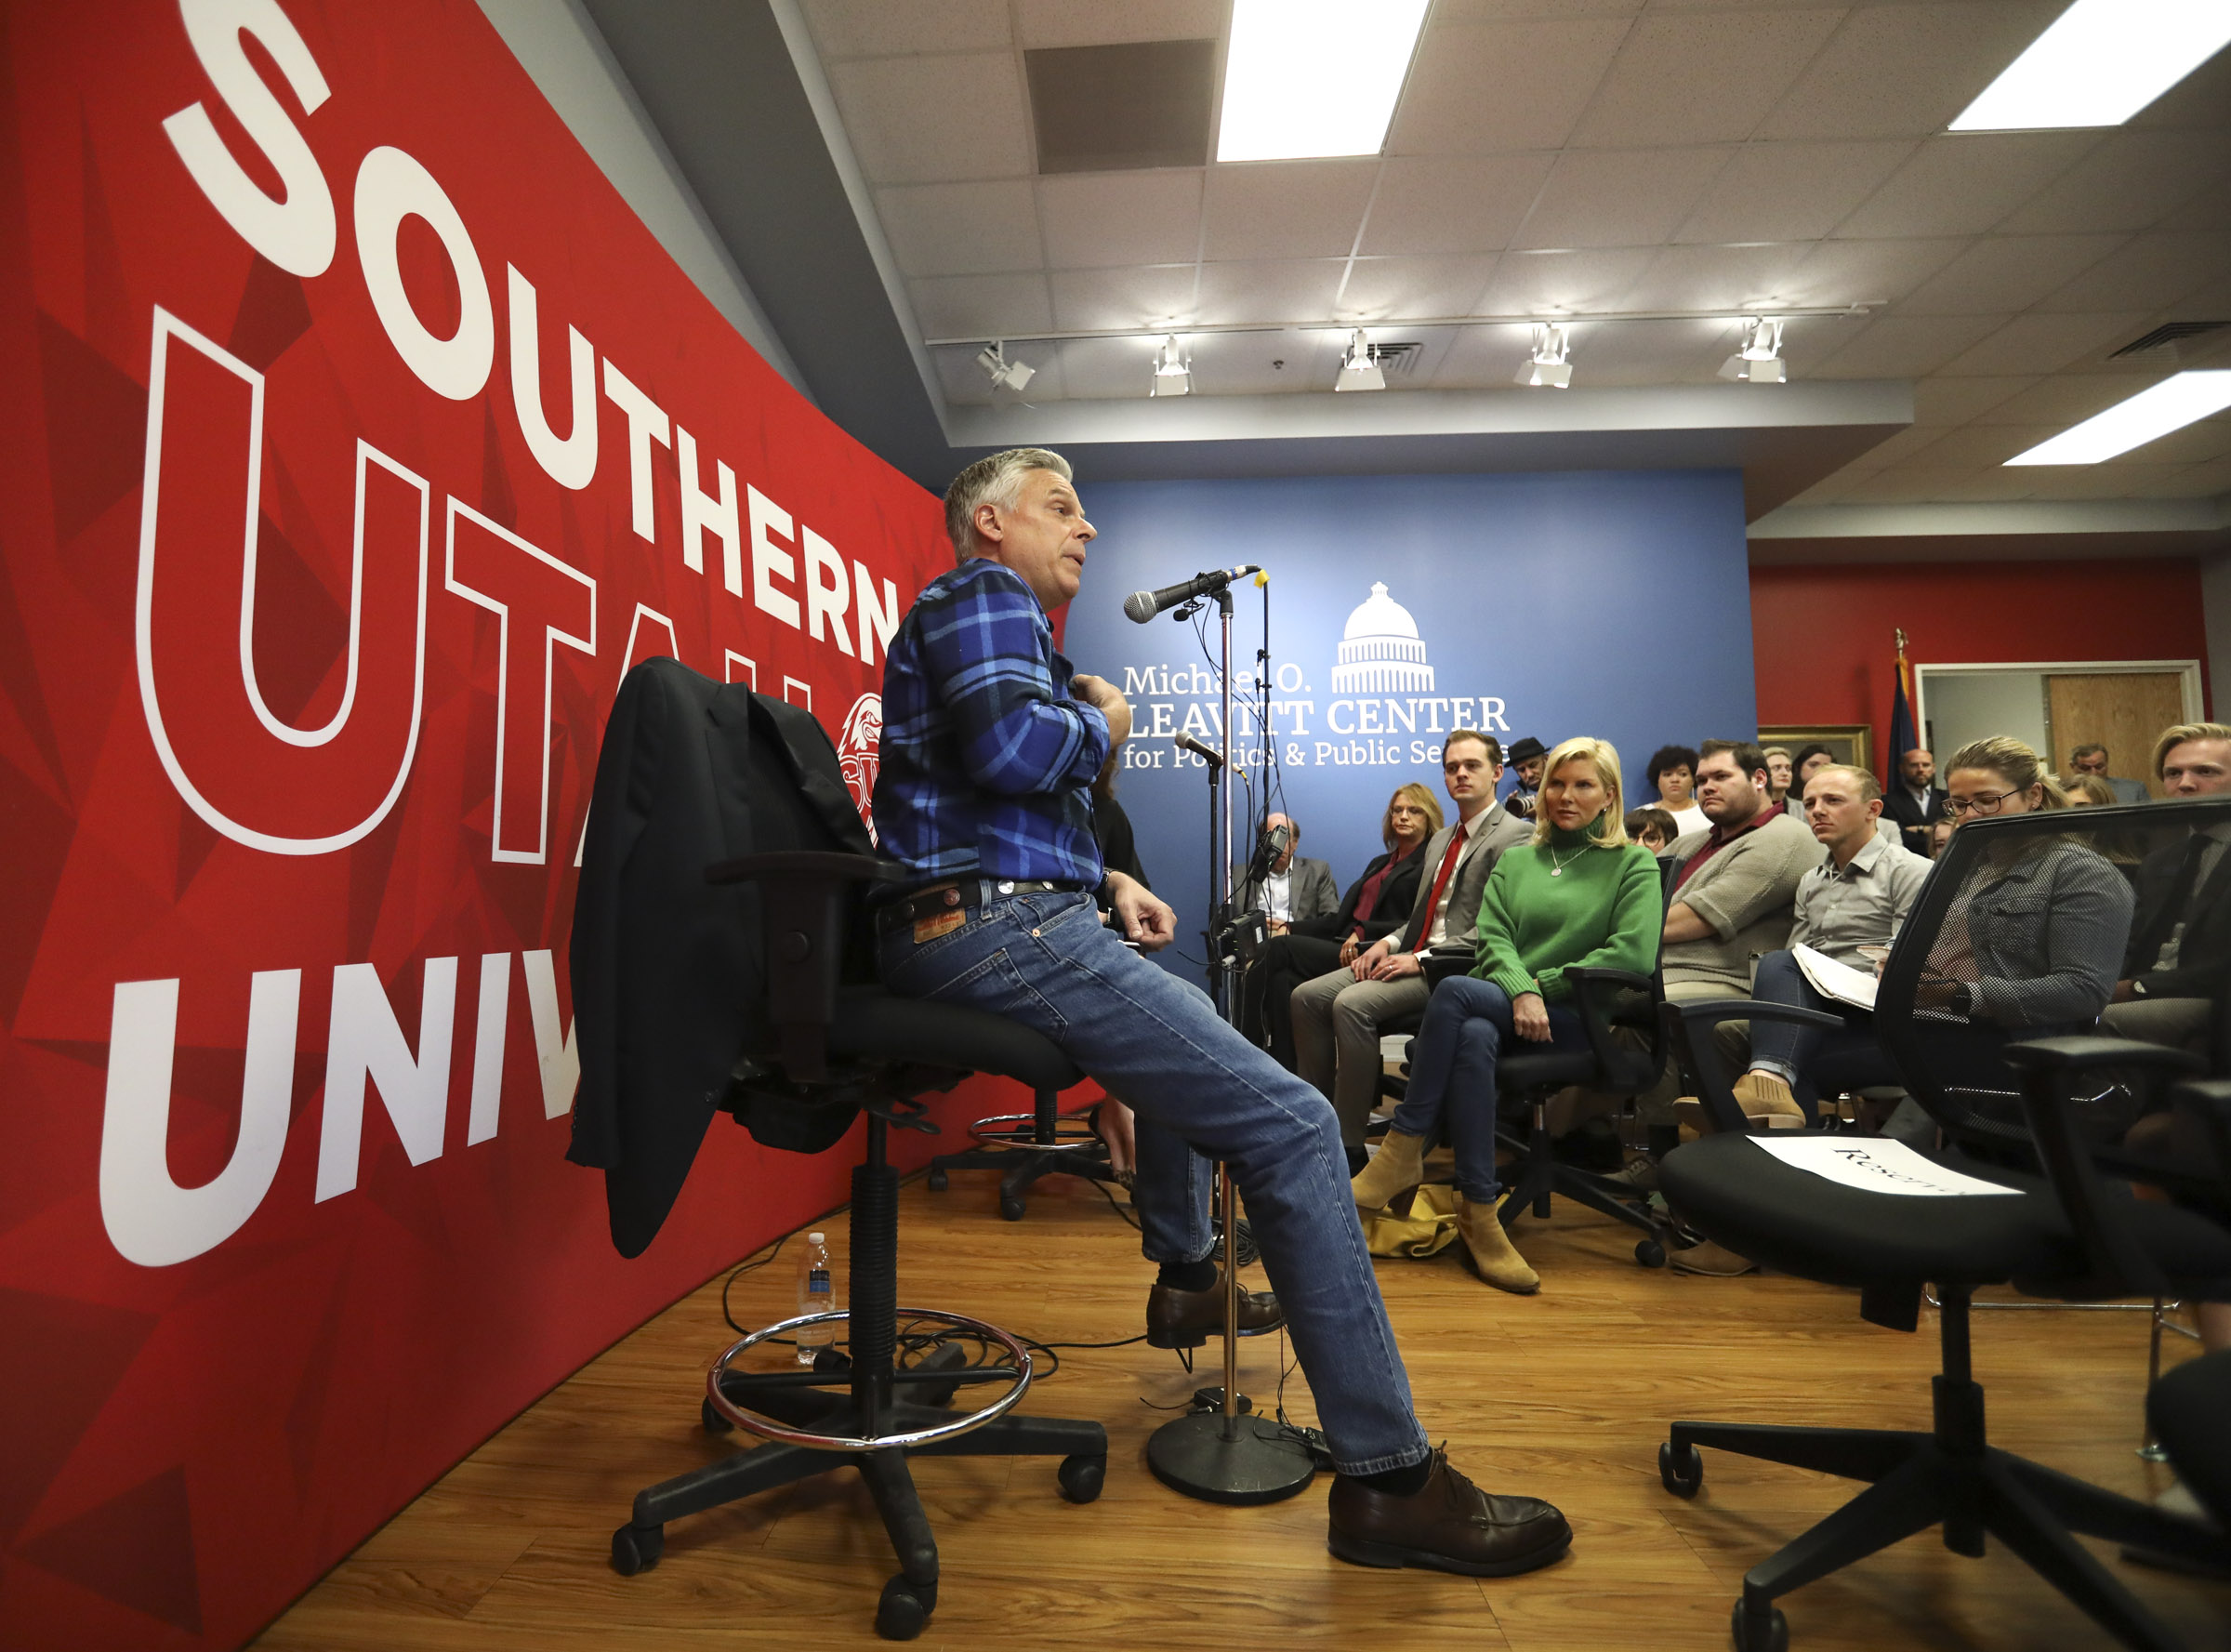 """Jon Huntsman Jr. speaks during a forum at the Michael O. Leavitt Center for Politics and Public Service at Southern Utah University in Cedar City on Thursday, Nov. 14, 2019. Huntsman spoke on """"Utah and the World"""" during the event and also answered questions about his newly announced run for a third term as Utah's governor."""